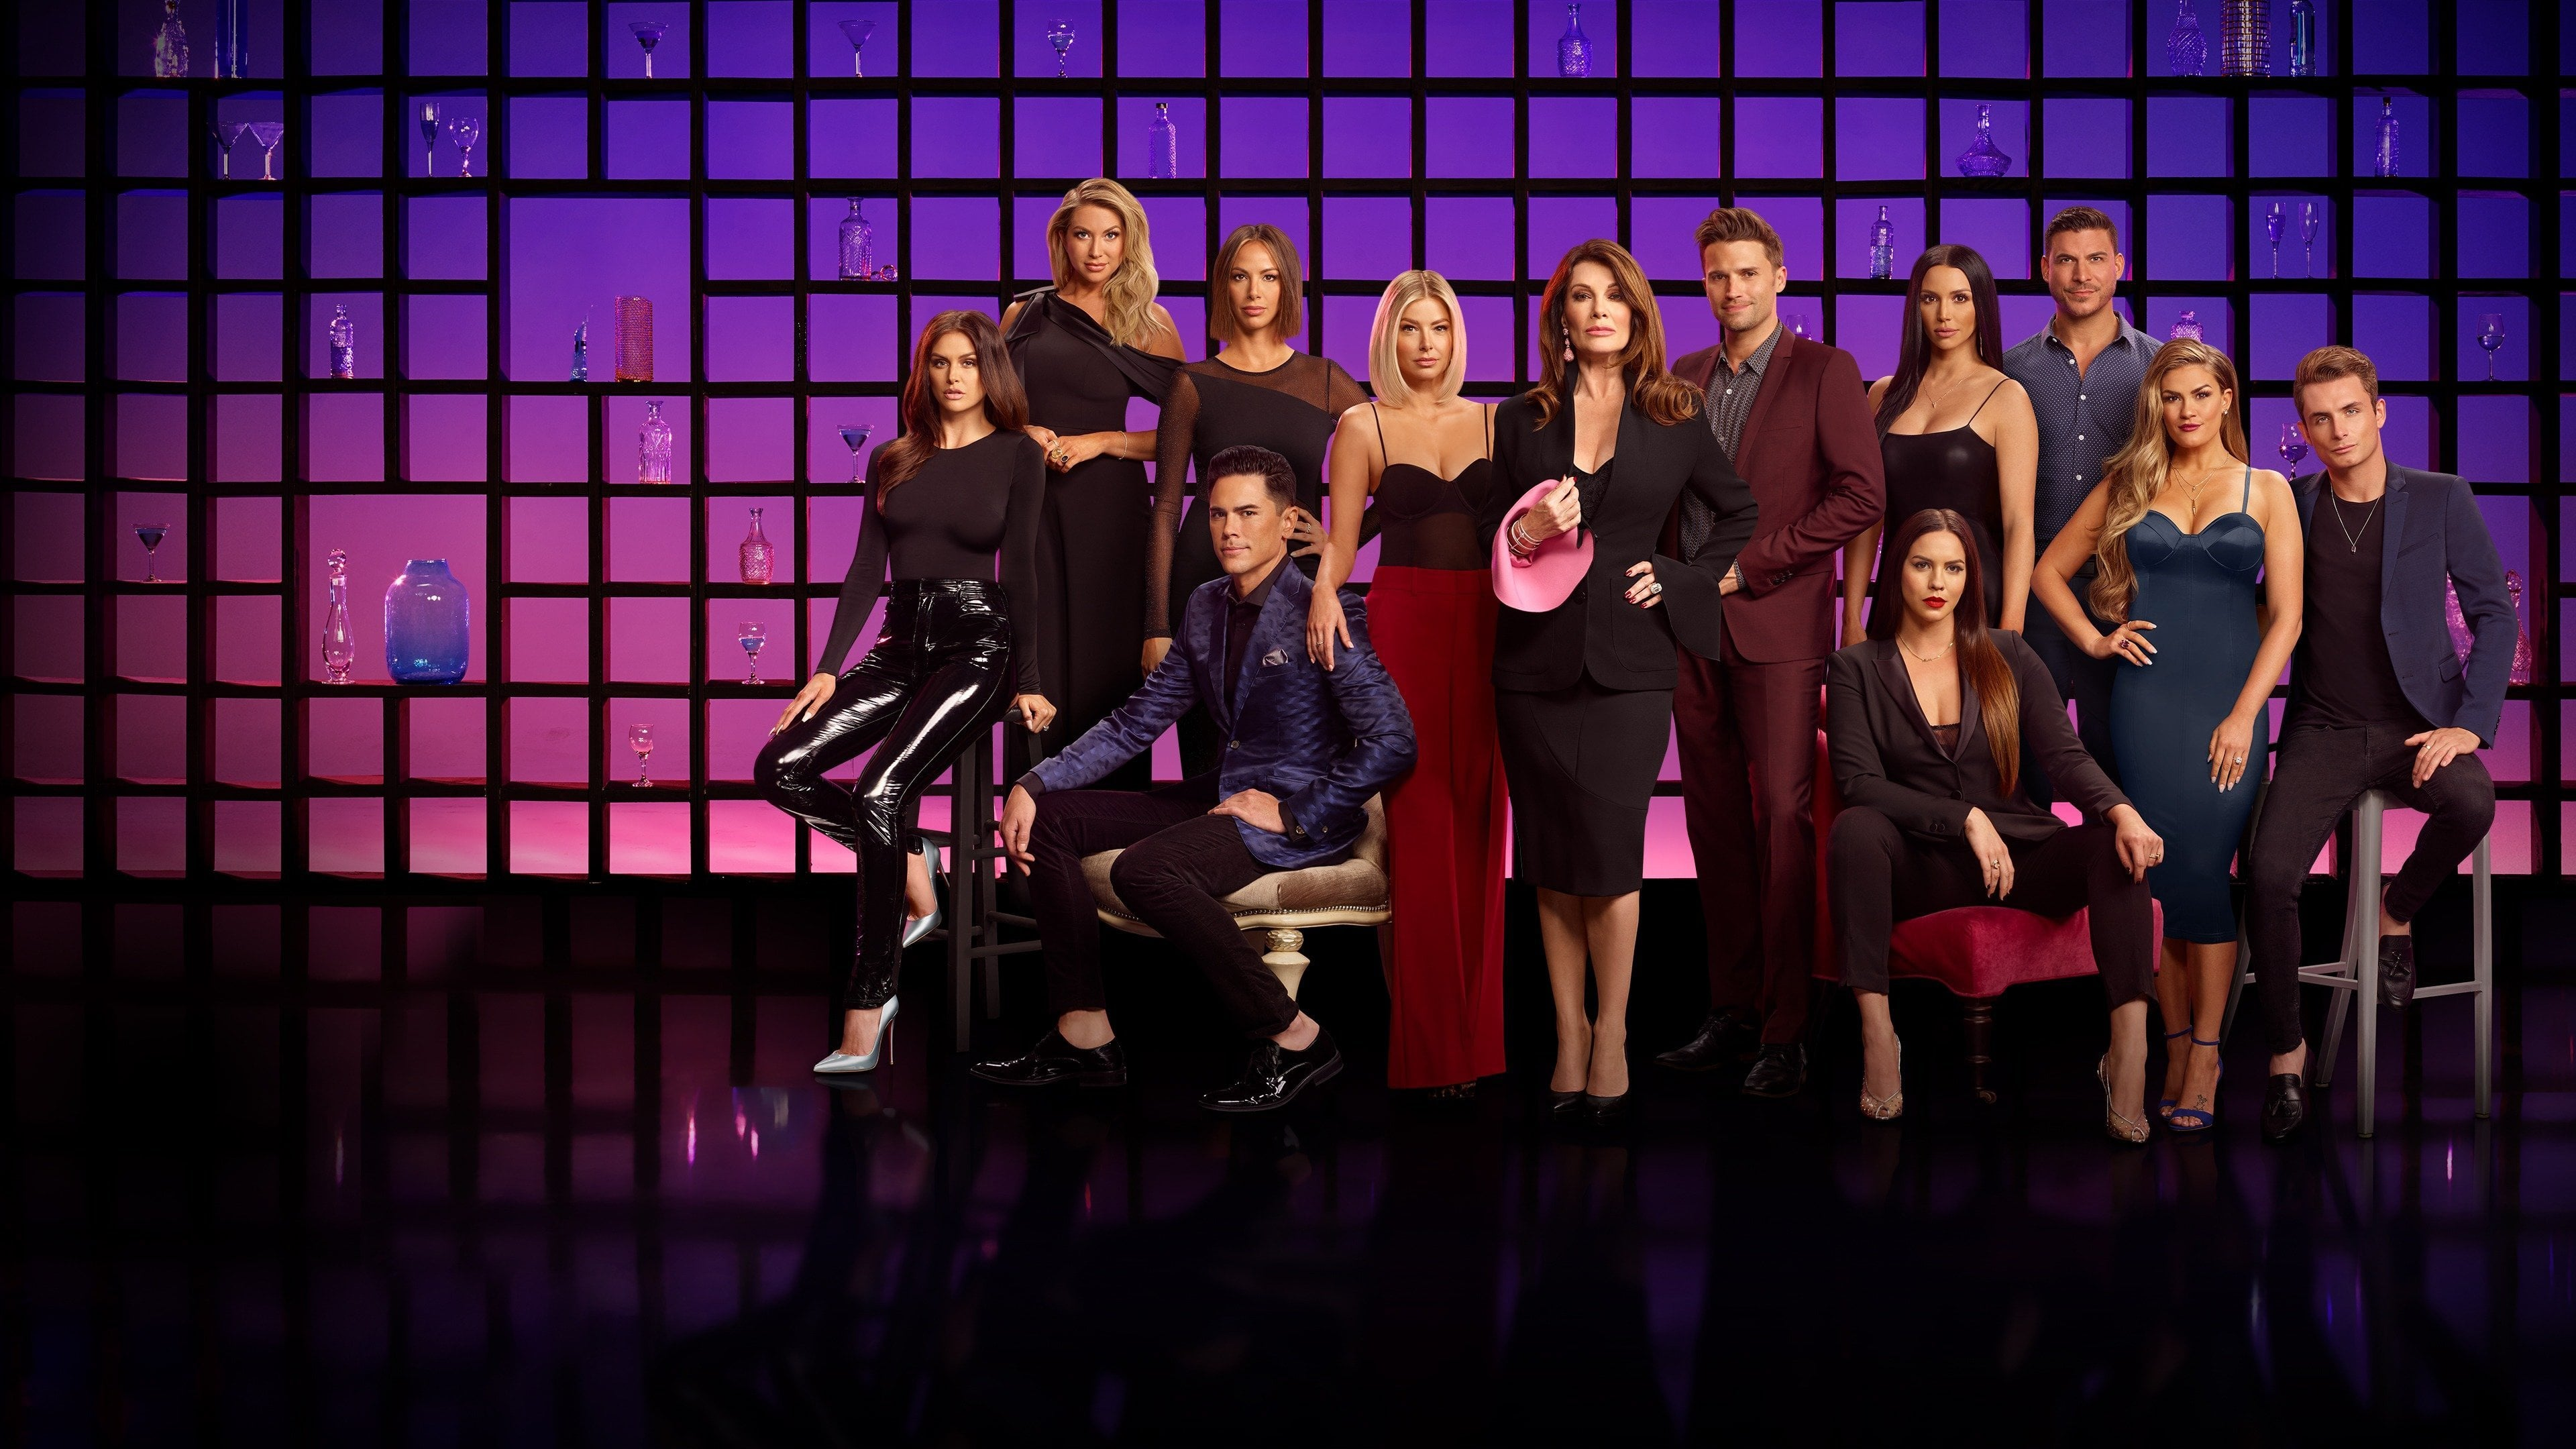 Vanderpump Rules - Season 7 Episode 1 : A Decent Proposal